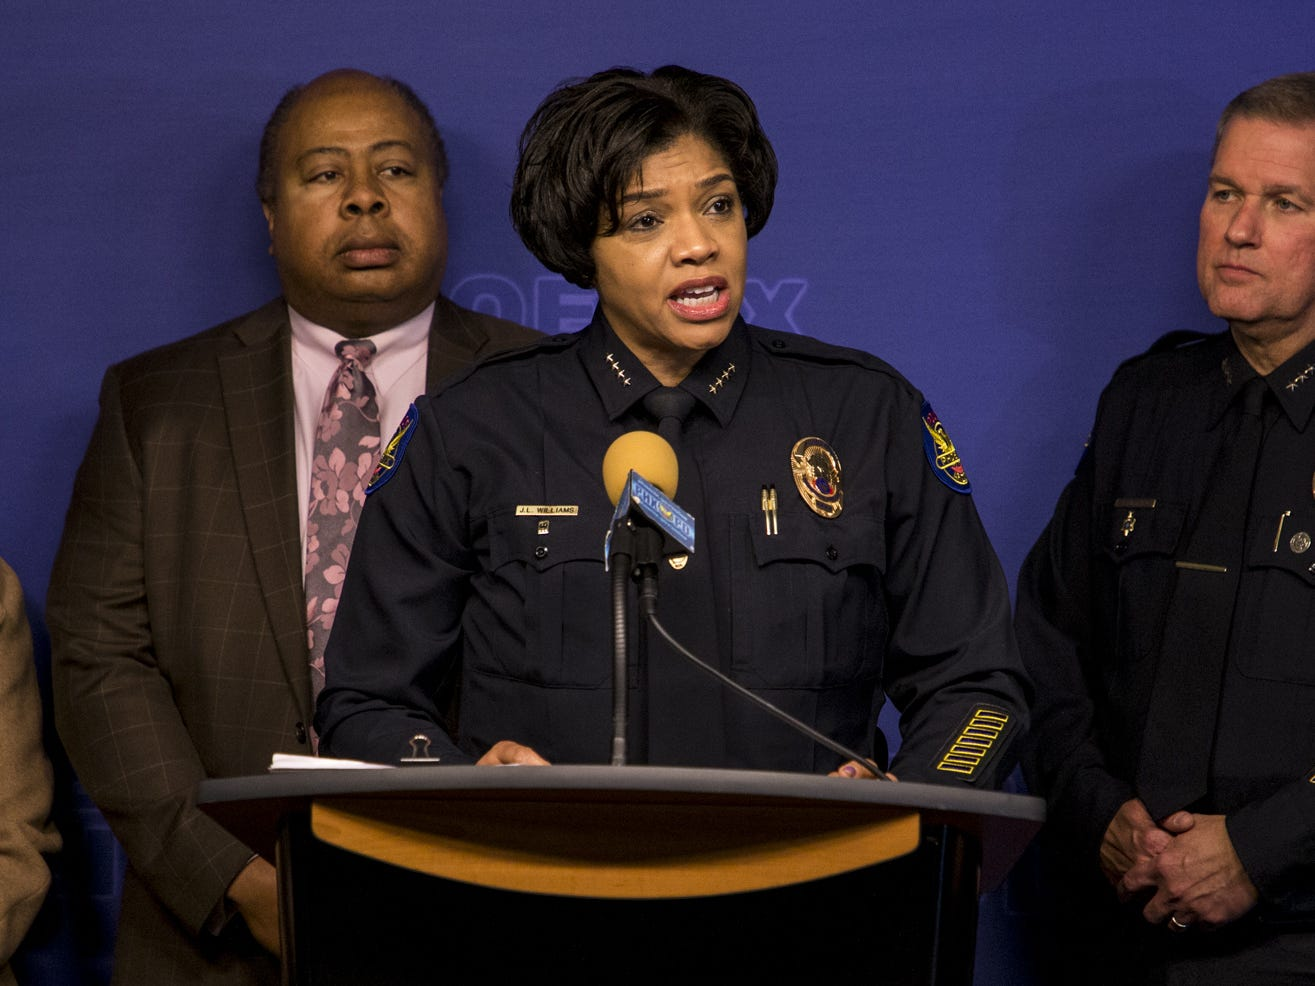 Phoenix Police Chief Jeri Williams speaks during a press conference regarding the arrest of a suspect in the Hacienda rape case, Jan. 23, 2019, at Phoenix Police Headquarters.